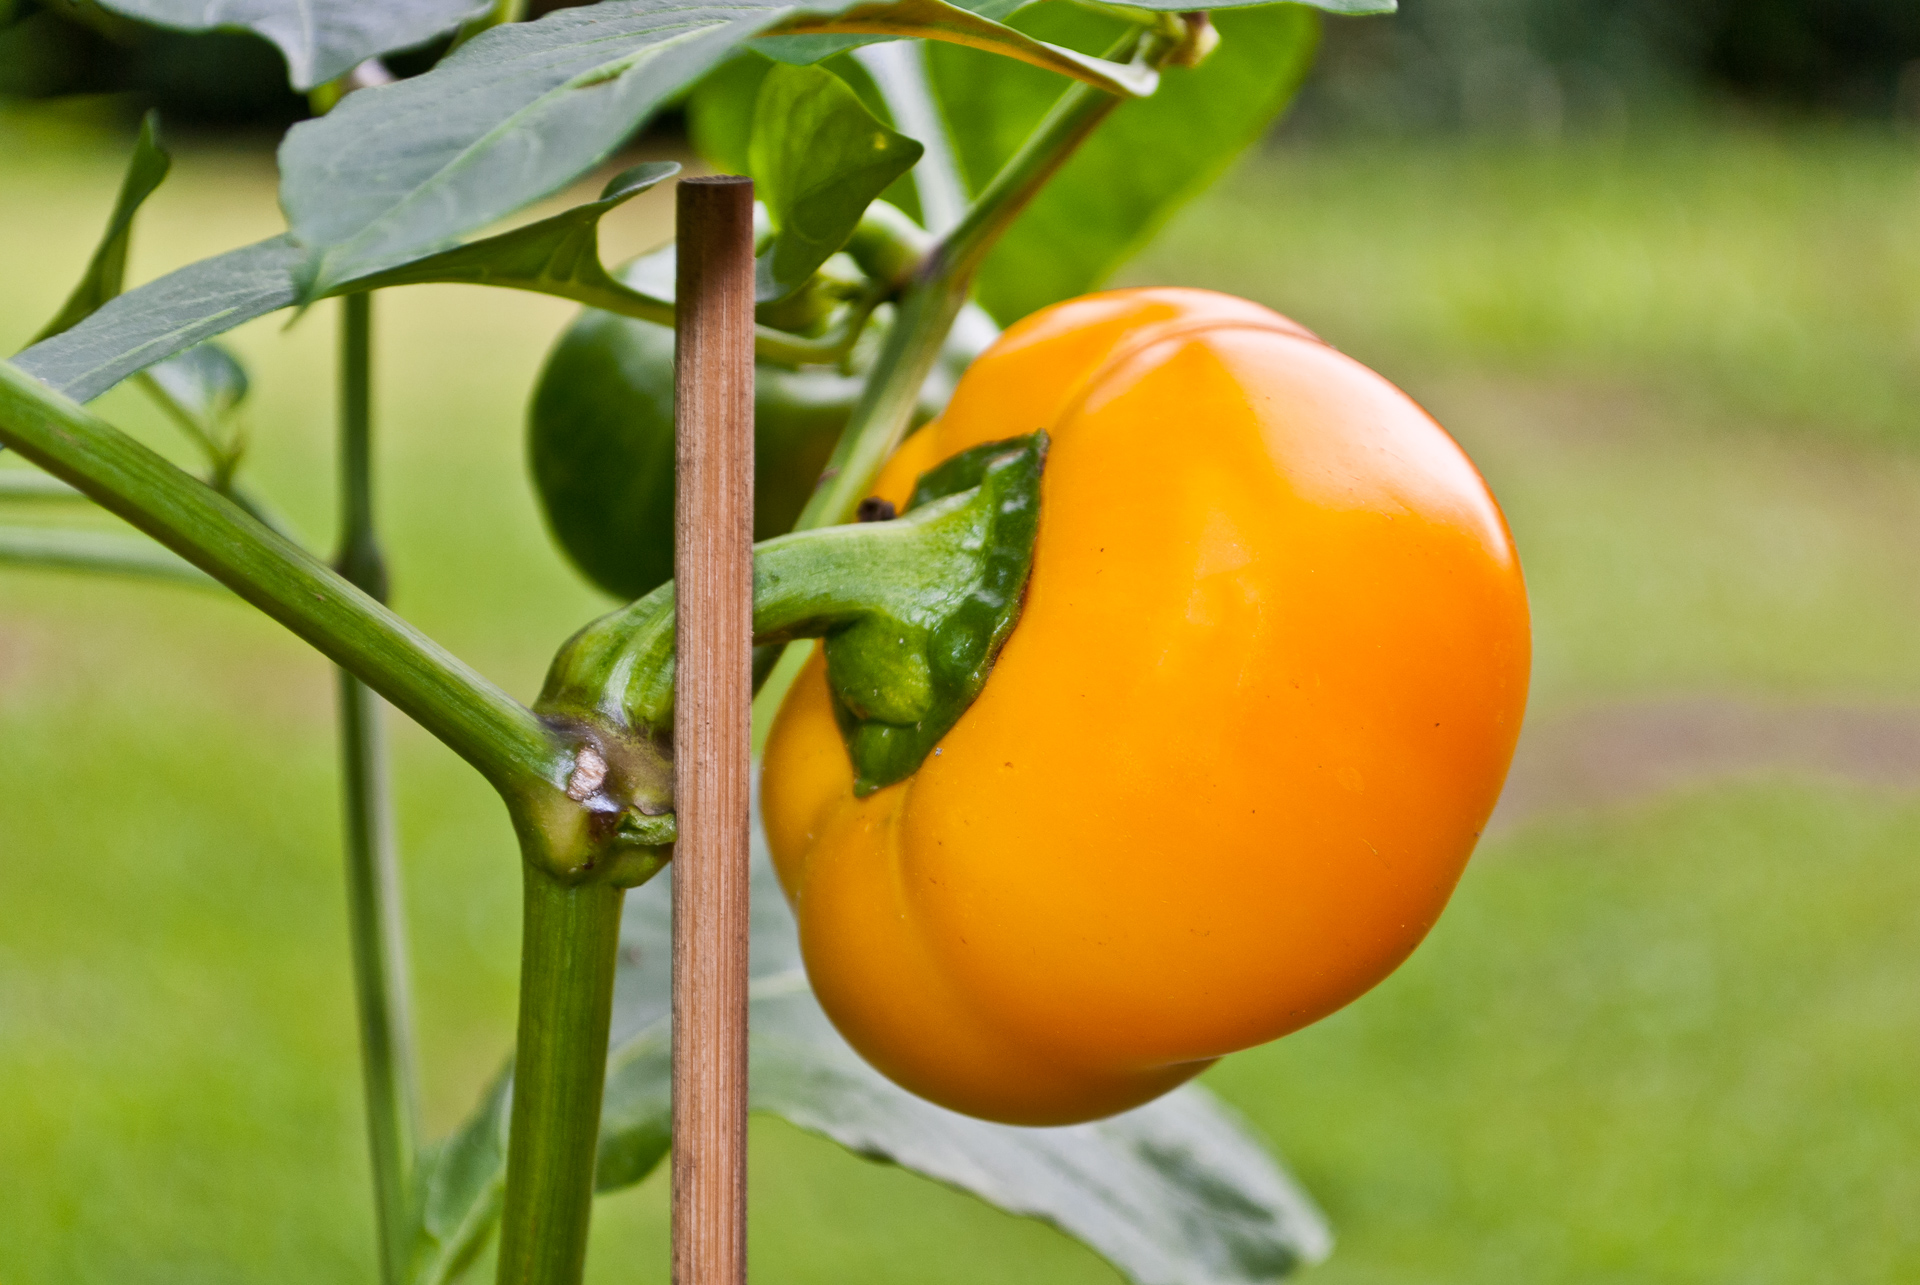 Grif 9177 - Capsicum annuum - Chilisorte